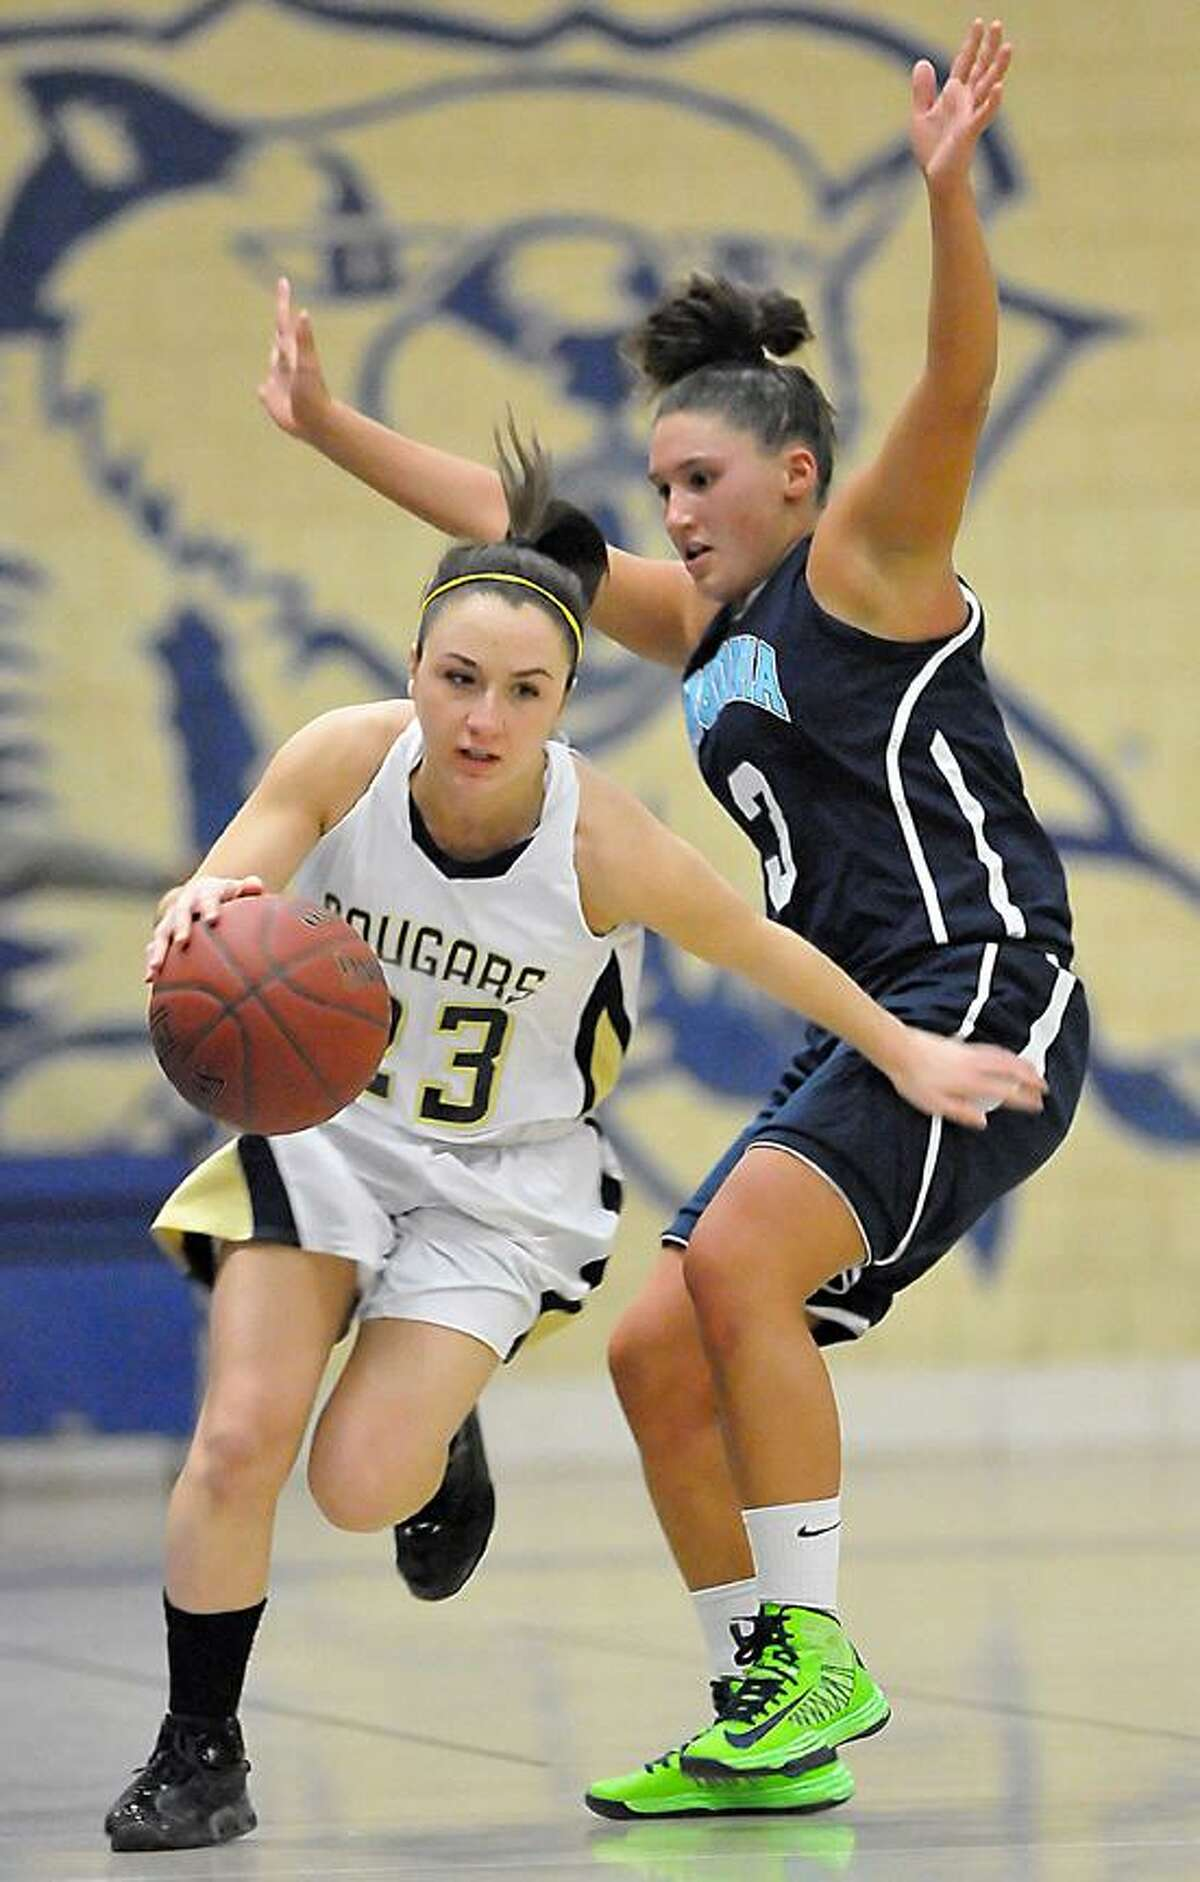 Catherine Avalone/The Middletown Press Haddam-Killingworth senior point guard Marissa Moncata drives past Ansonia senior guard Melissa Tirella Thursday night at the H-K Fieldhouse in Higganum. The H-K Cougars defeated the Ansonia Chargers 52-37 in the CIAC Class M Quarterfinal game.